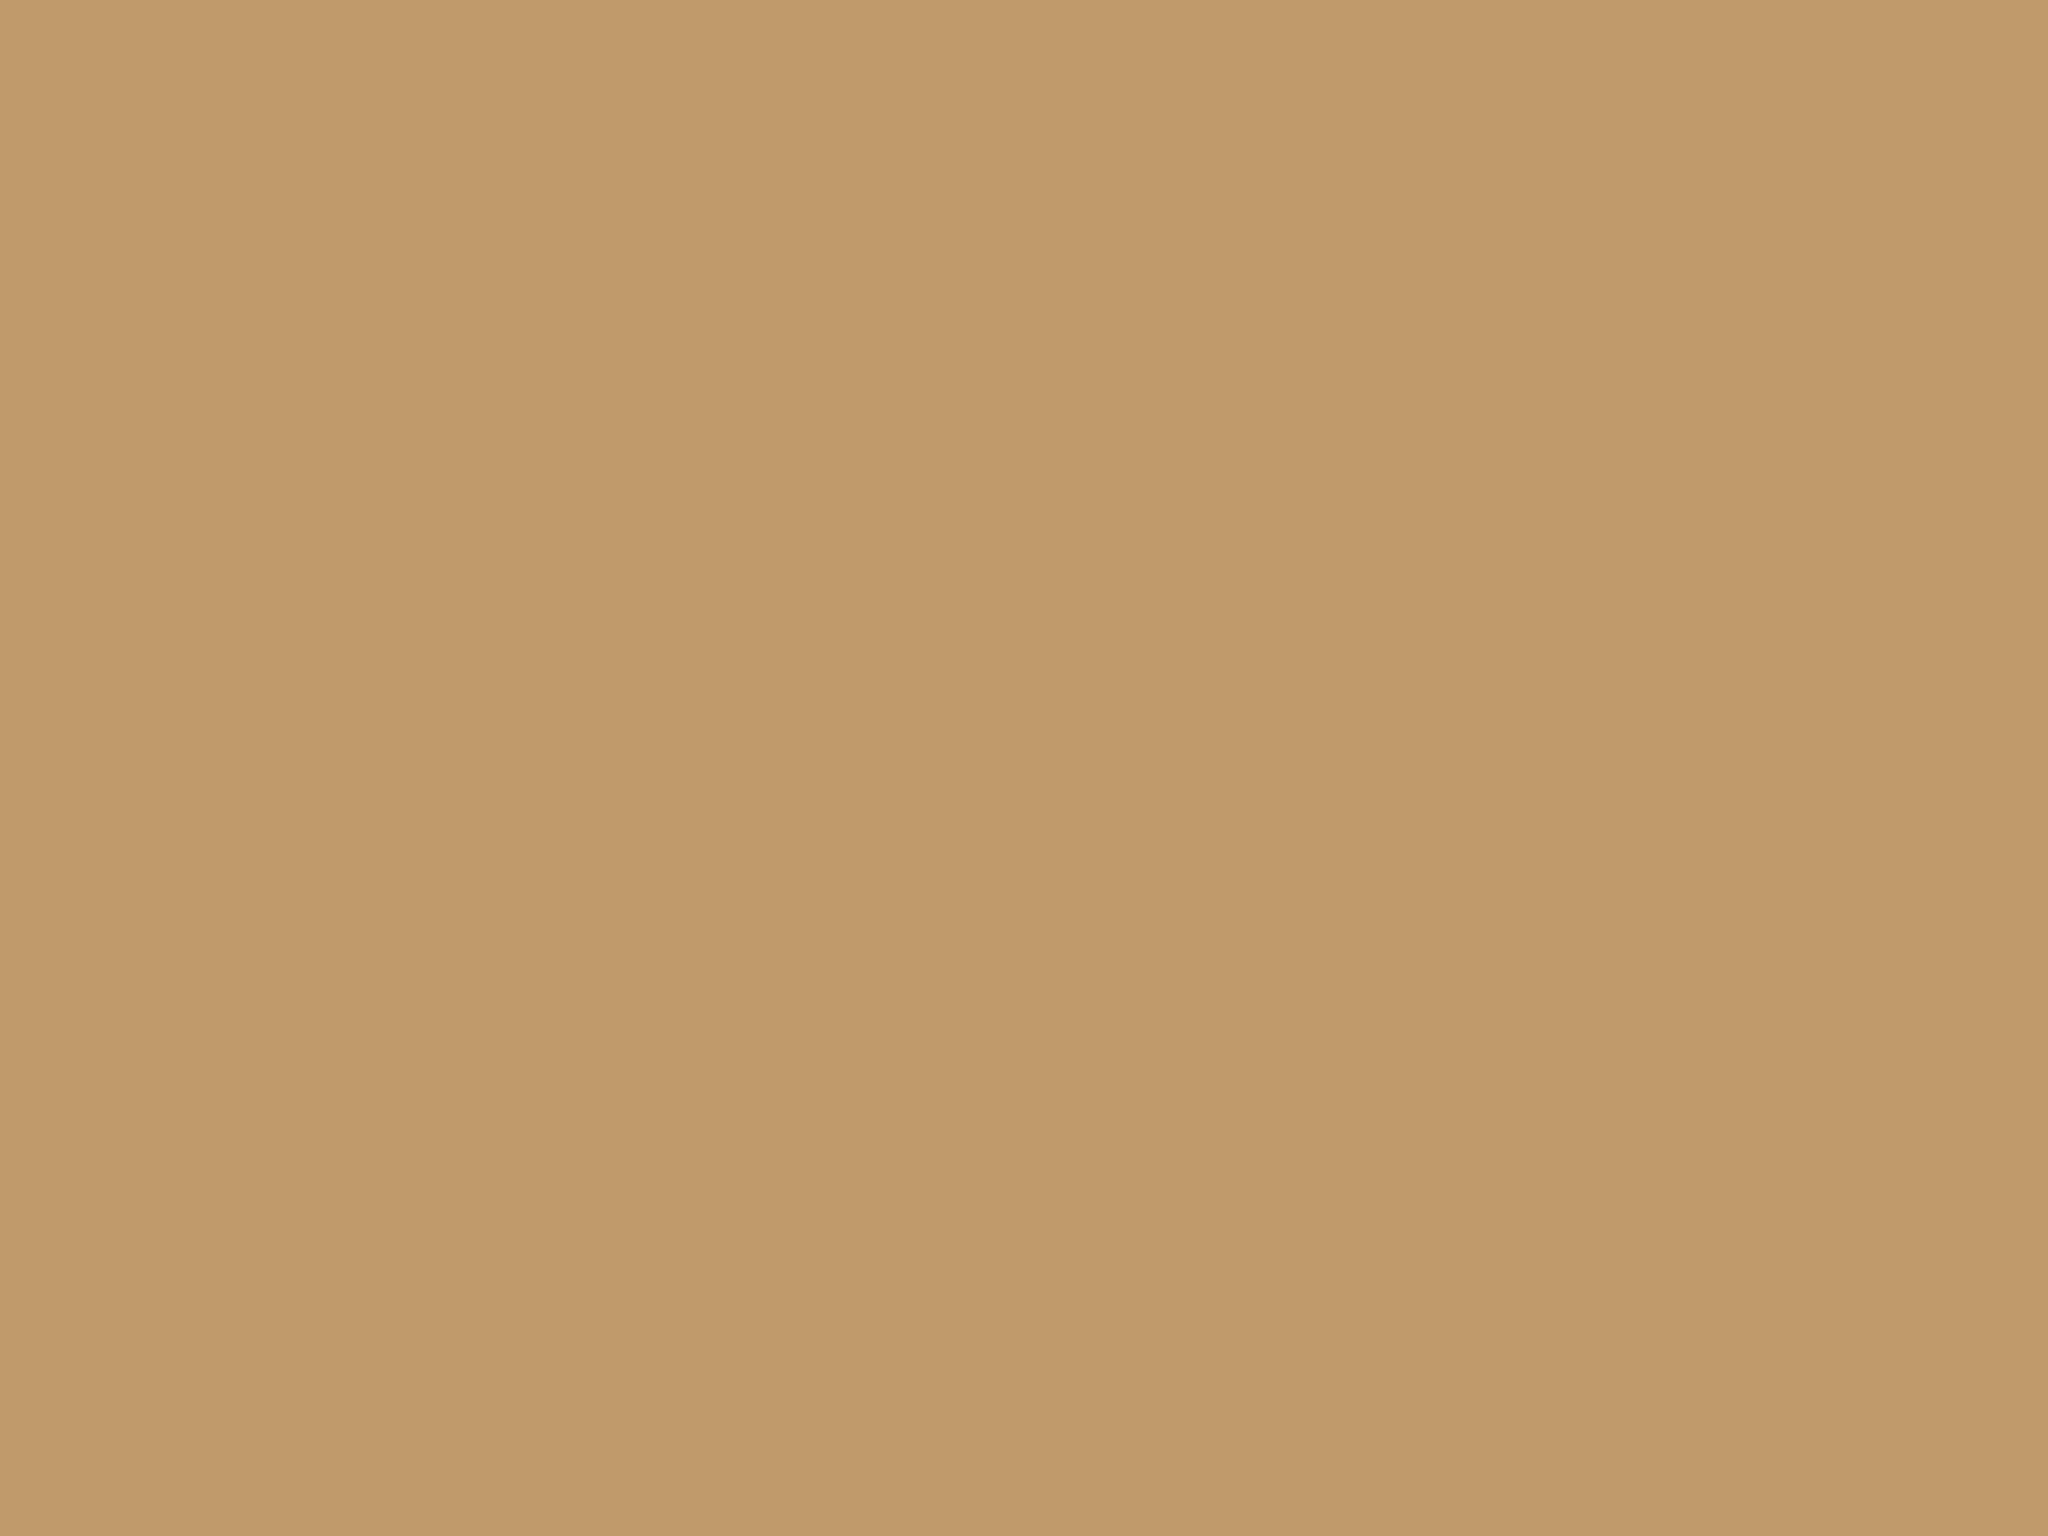 2048x1536 Wood Brown Solid Color Background